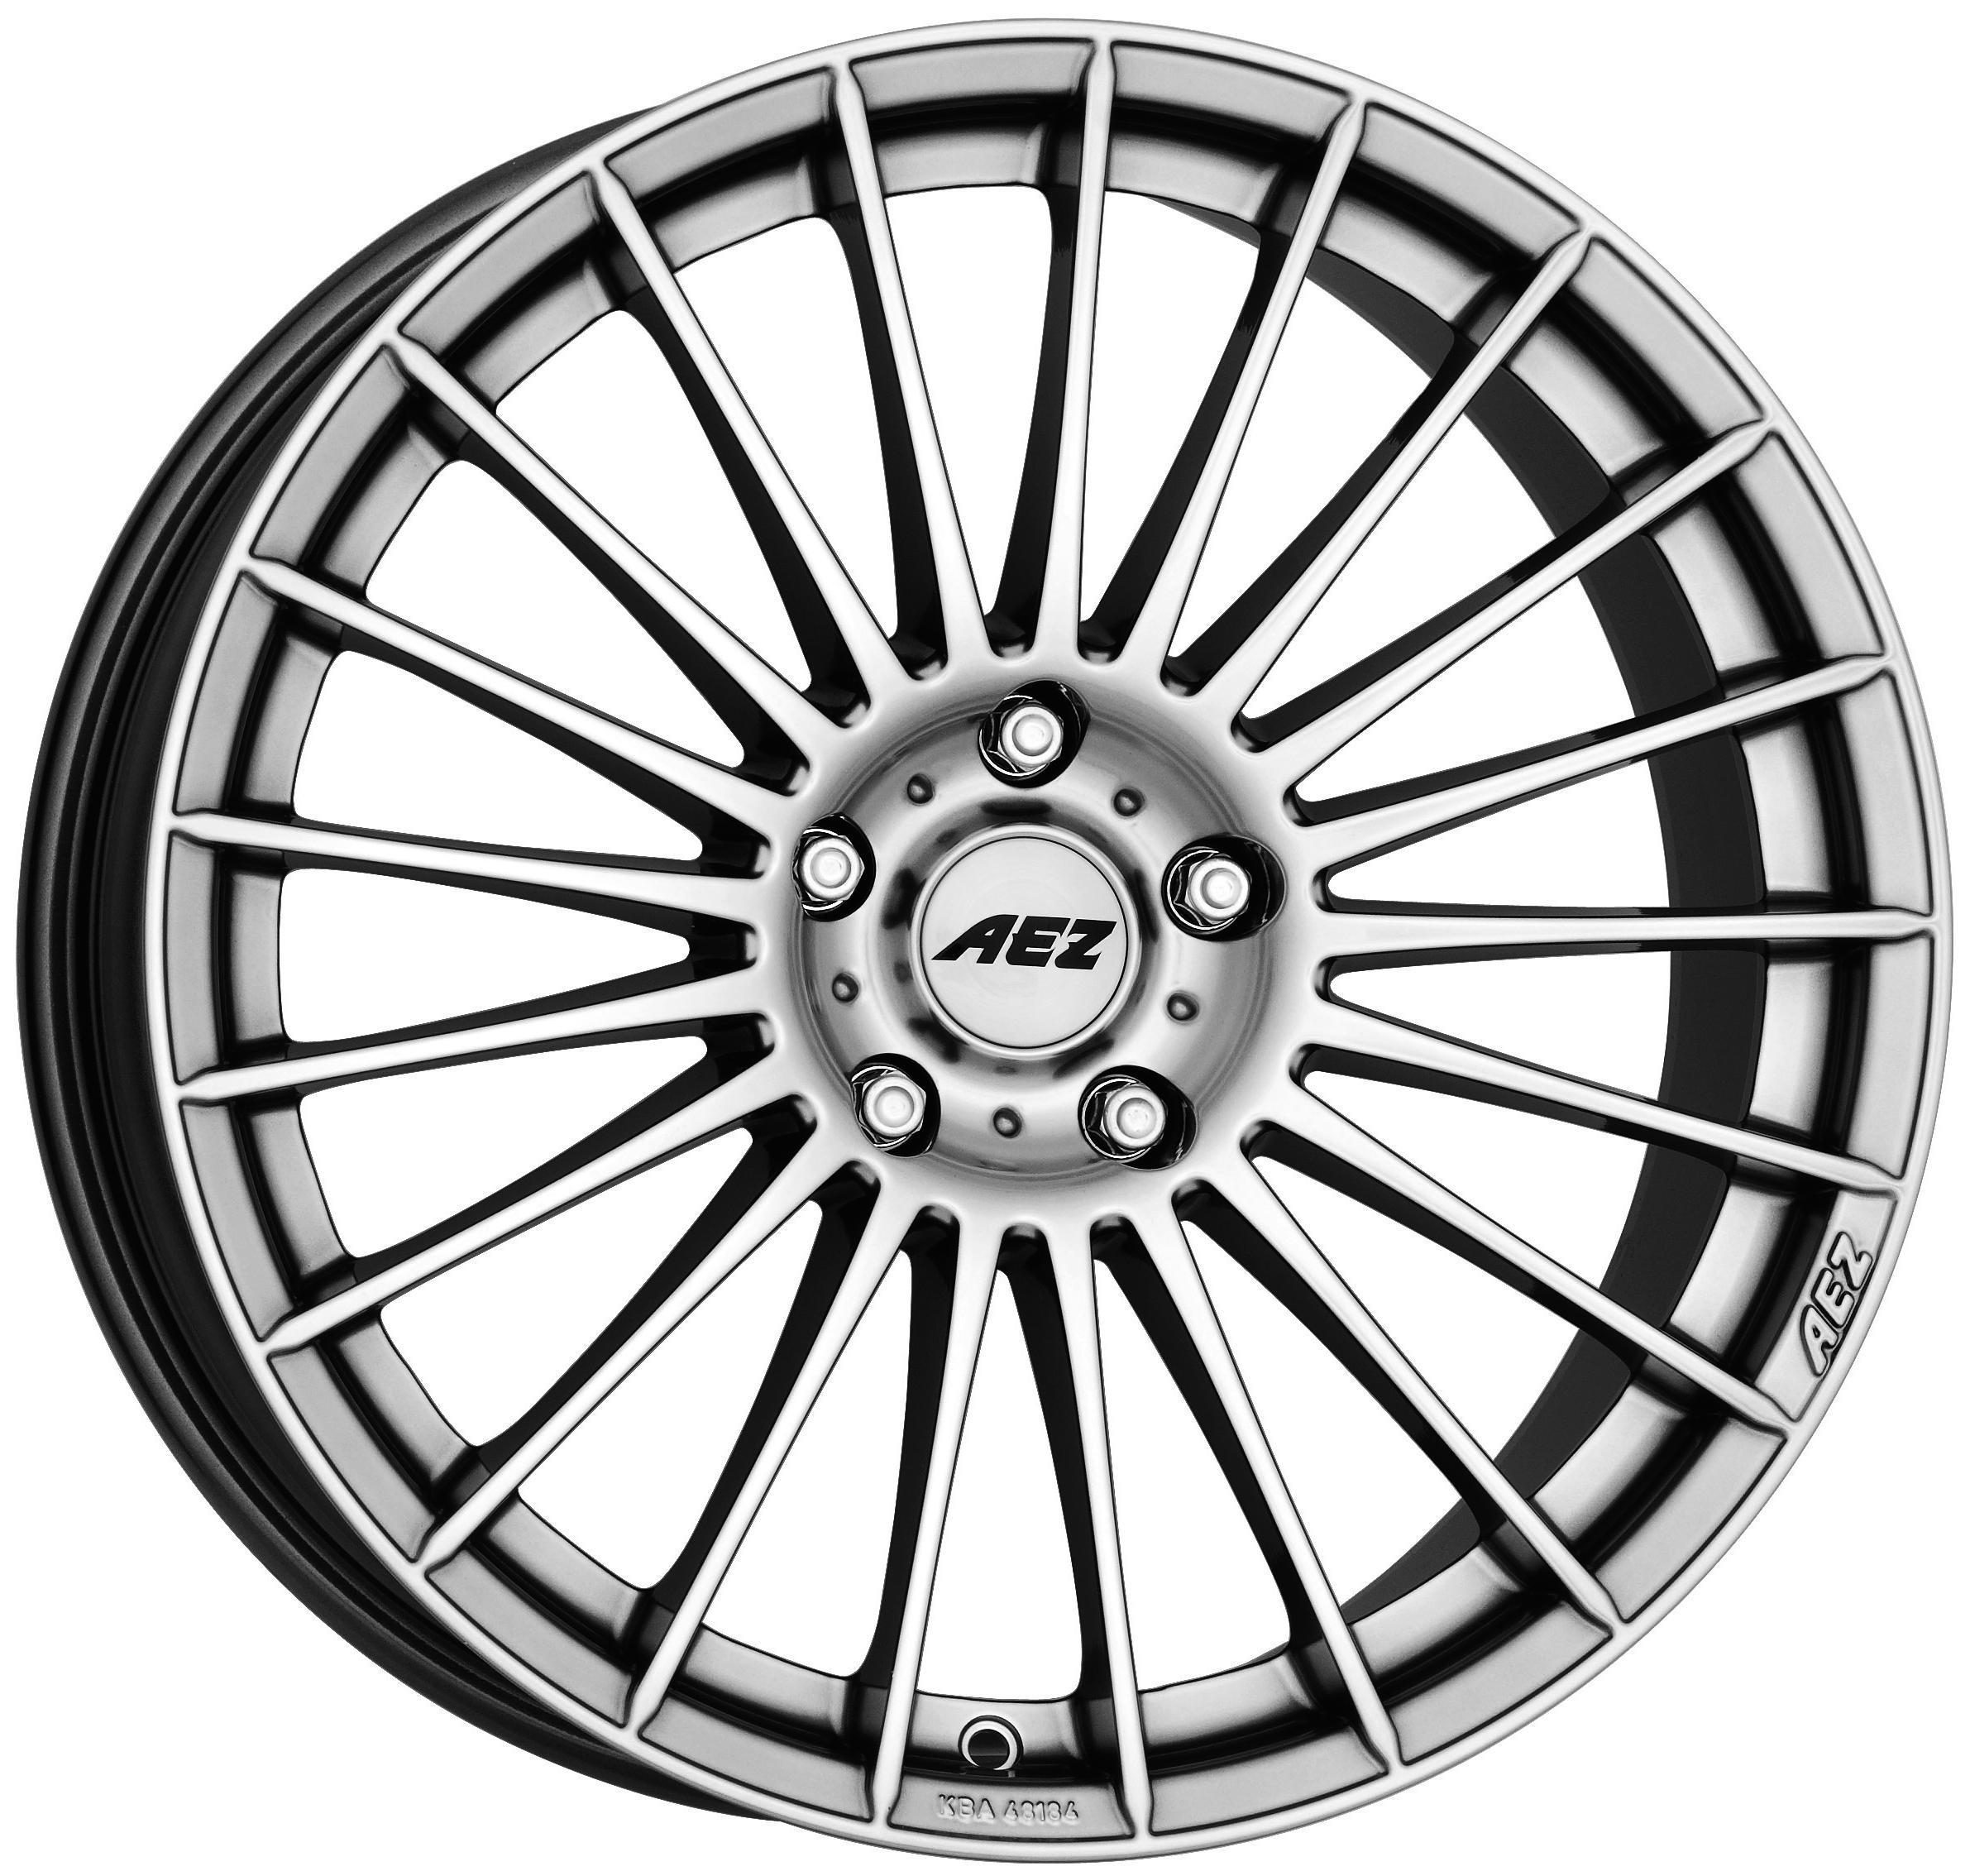 19″ aez valencia alloy wheels and tyre package aez valencia has a high gloss finish to its multi spokes